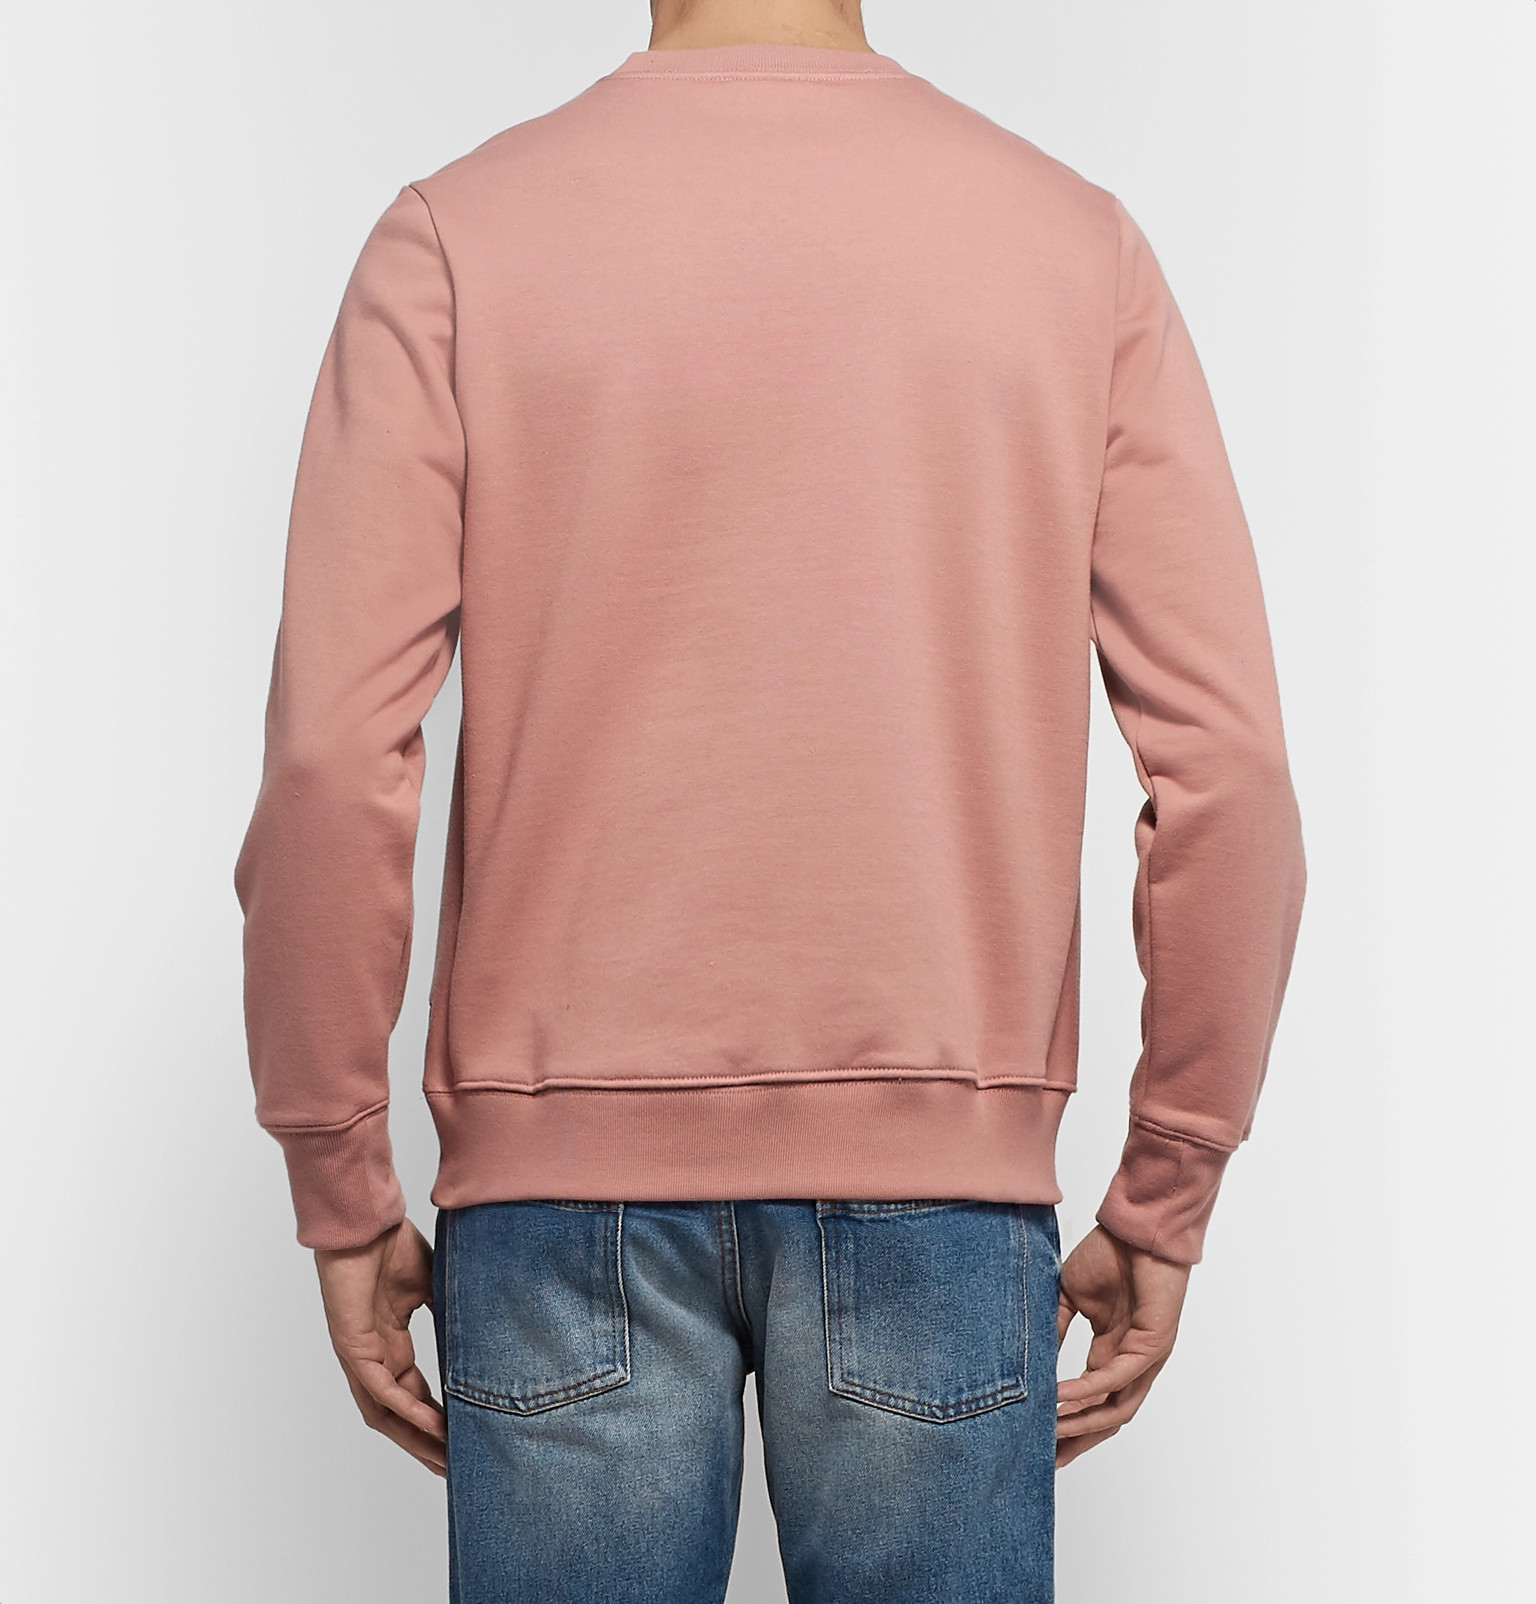 Organic Paul Jersey Sweatshirt By Ps Cotton Smithloopback wSqgt01